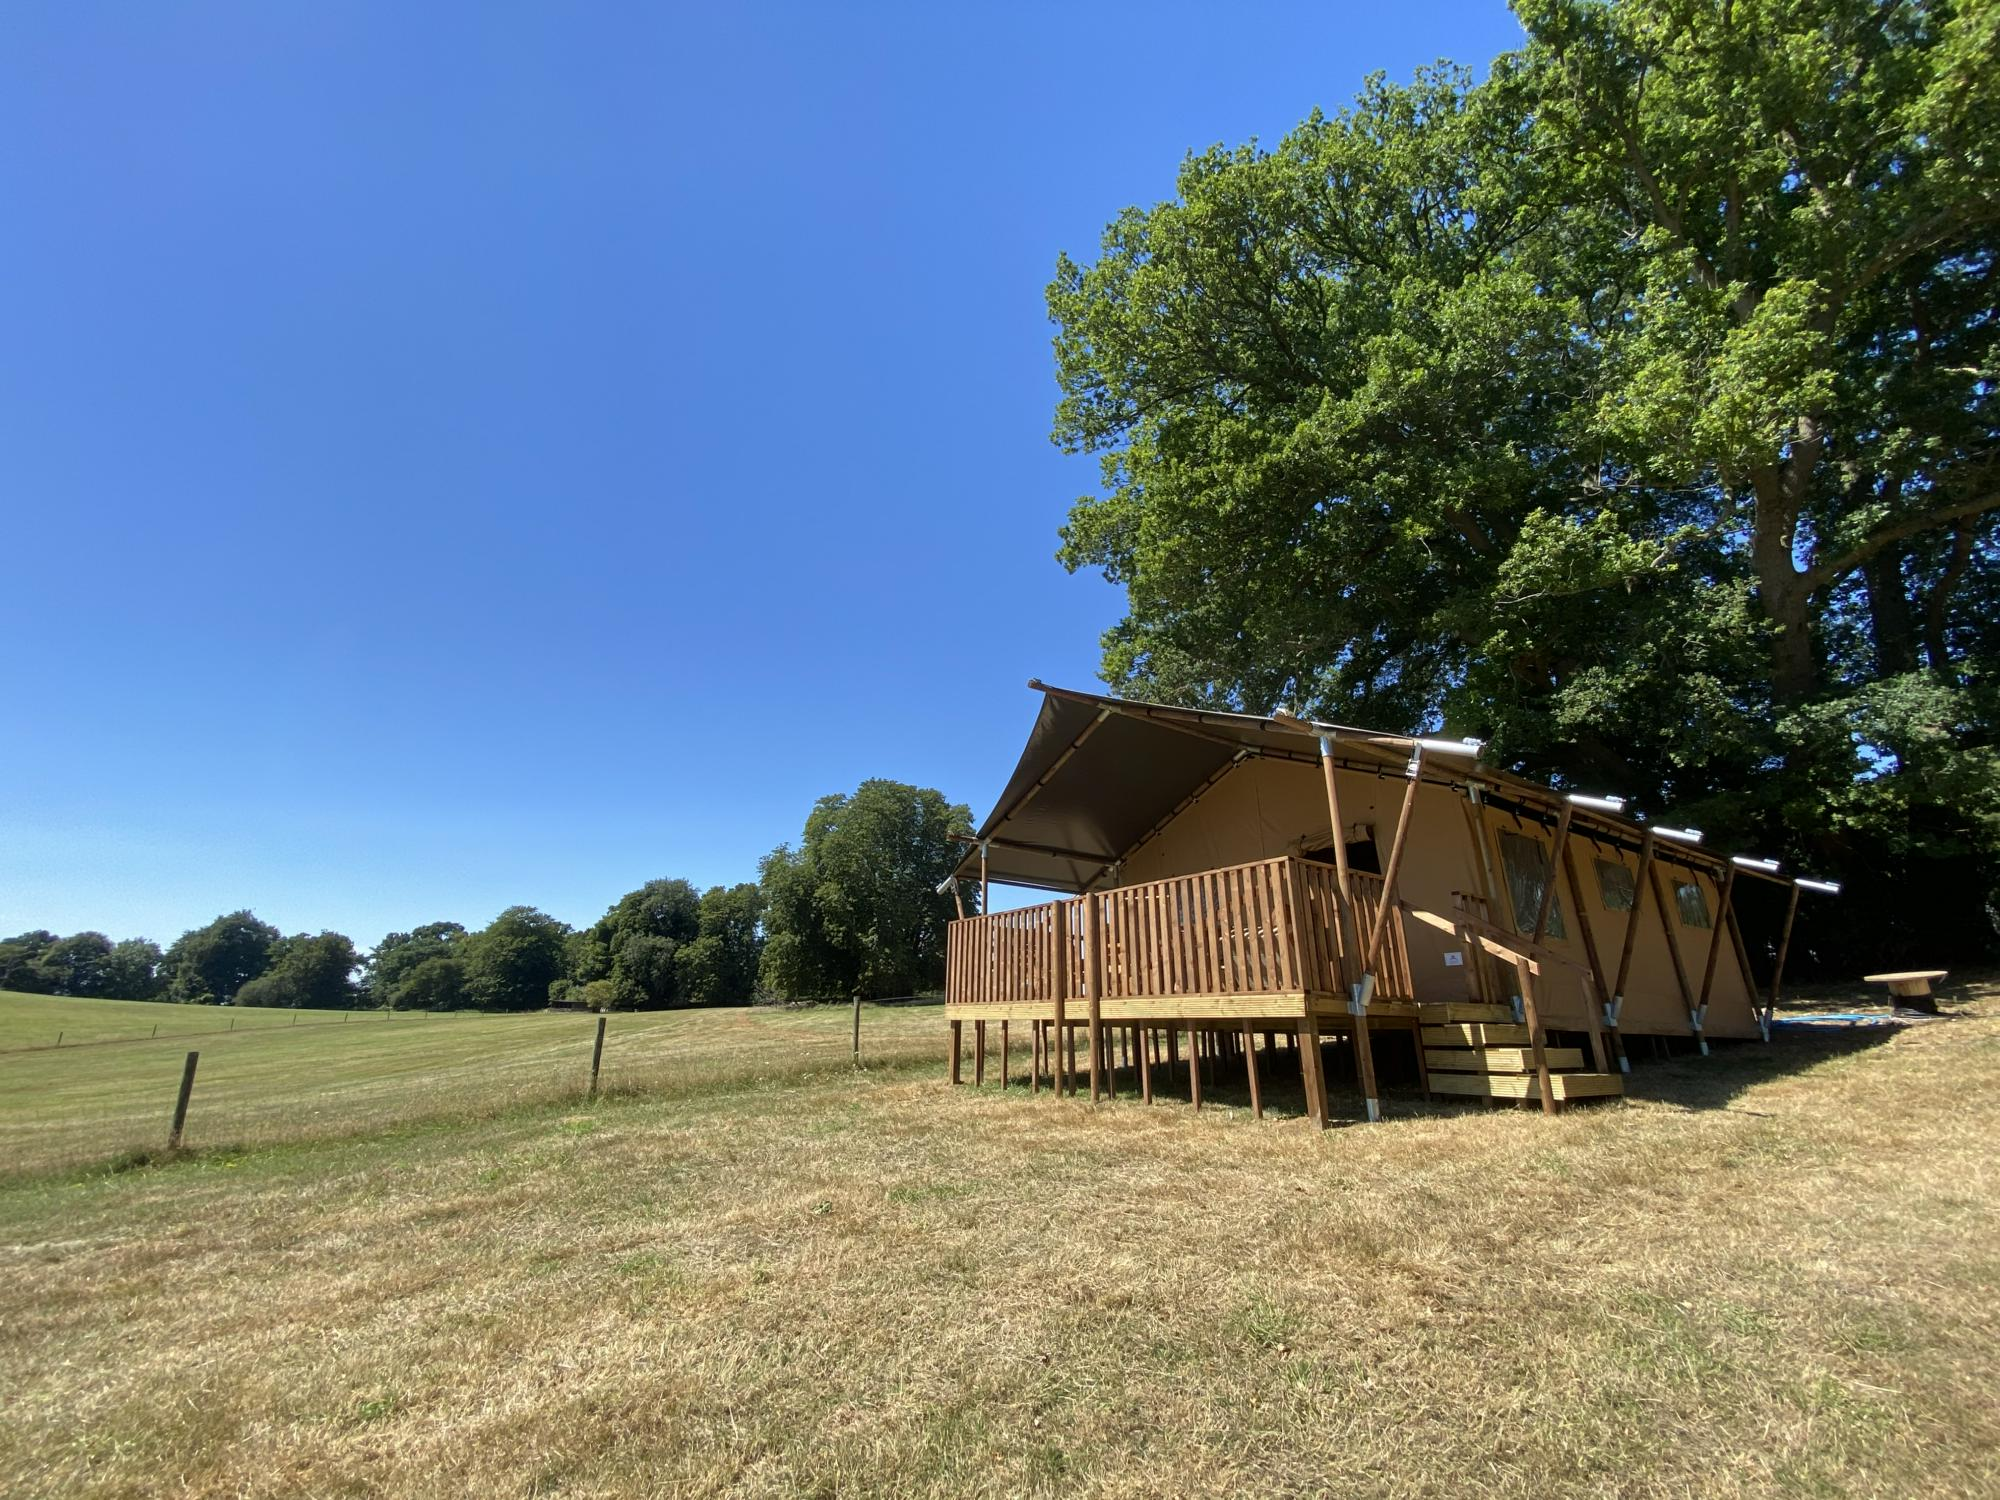 Glamping in South East England – I Love This Campsite